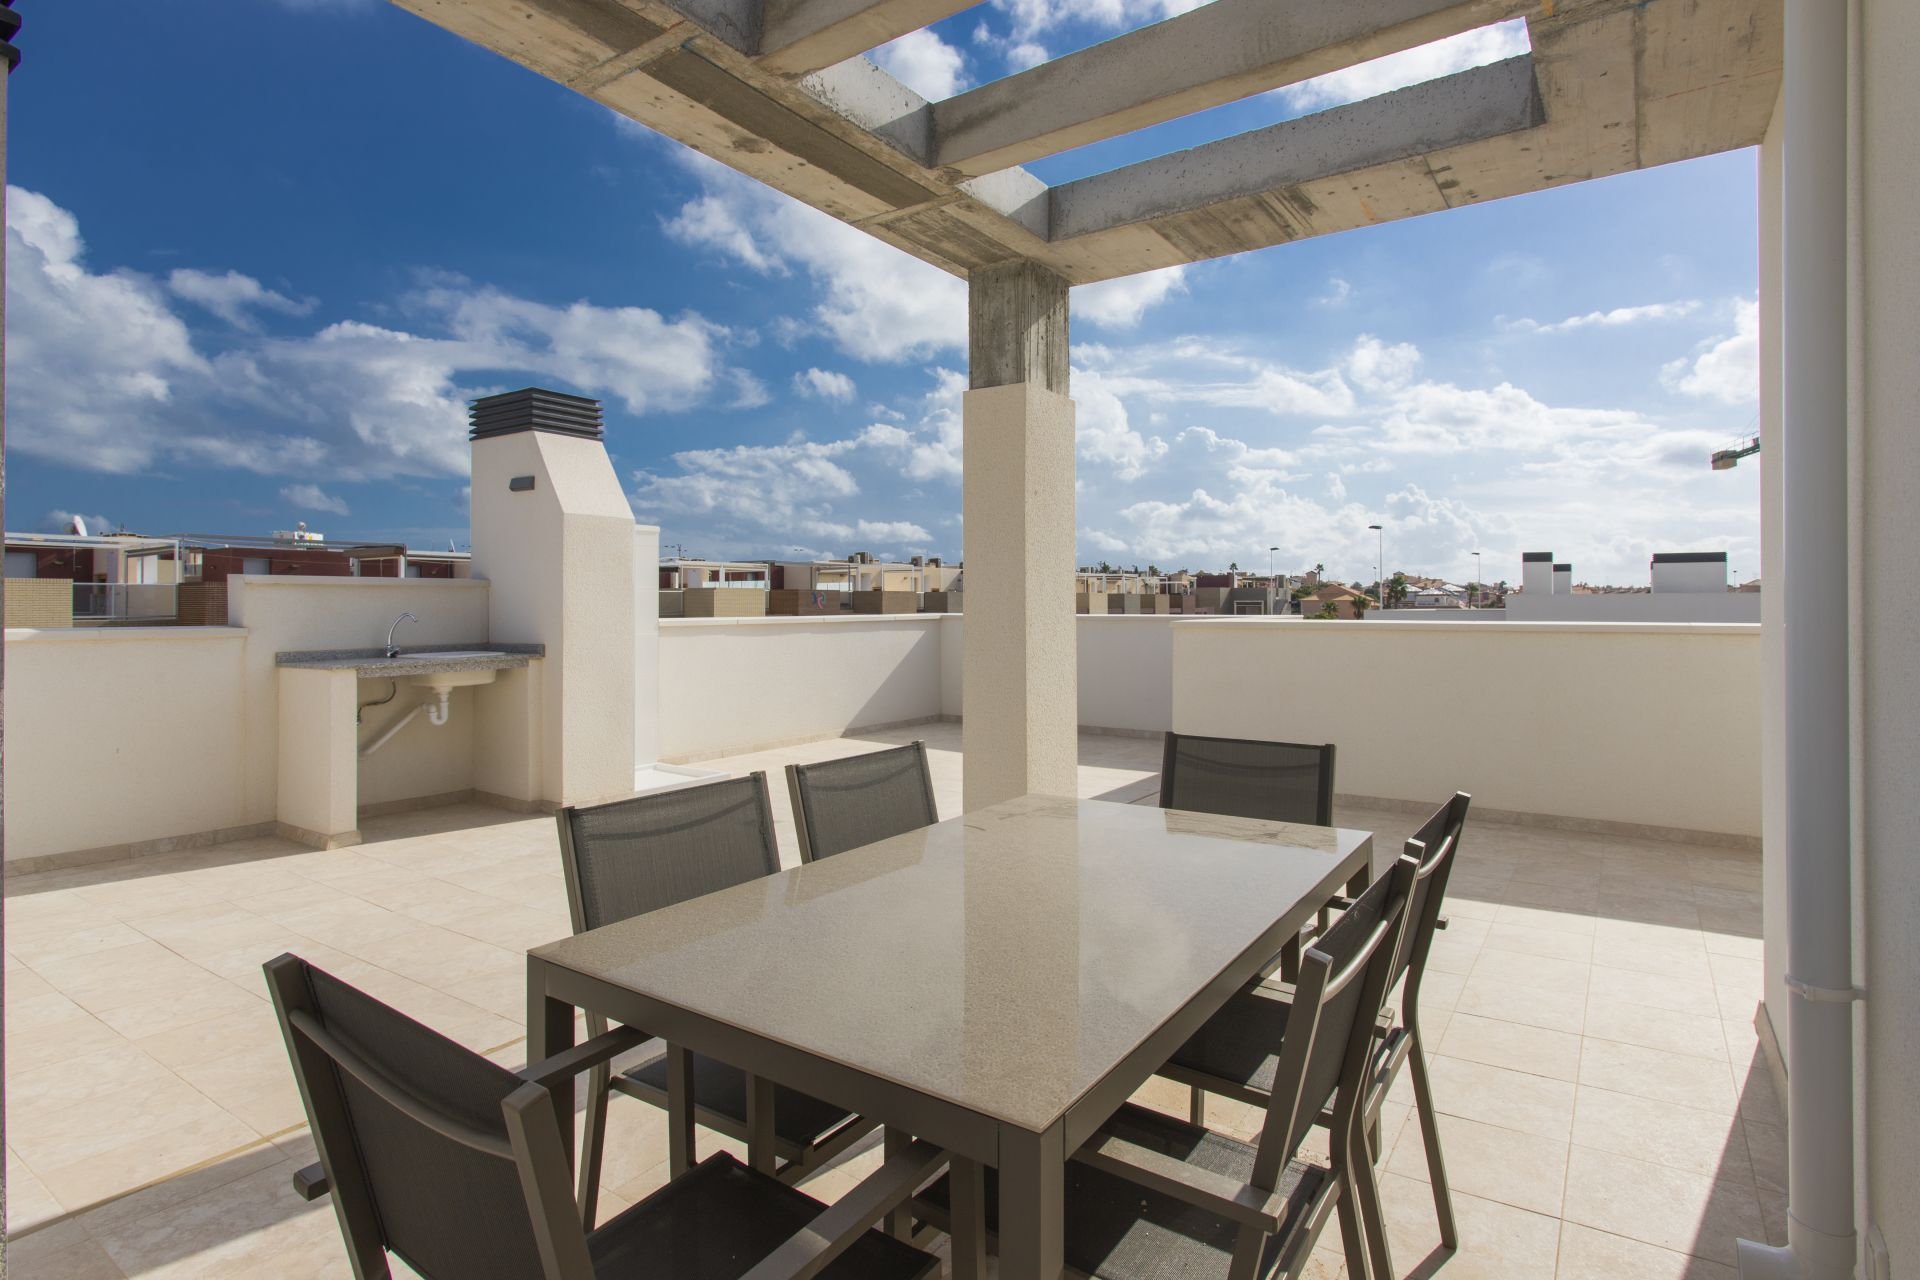 Townhouses with 3 bedrooms and 3 bathrooms, solarium, garden, in urbanization with pool and jacuzzi, Aguas Nuevas. 23